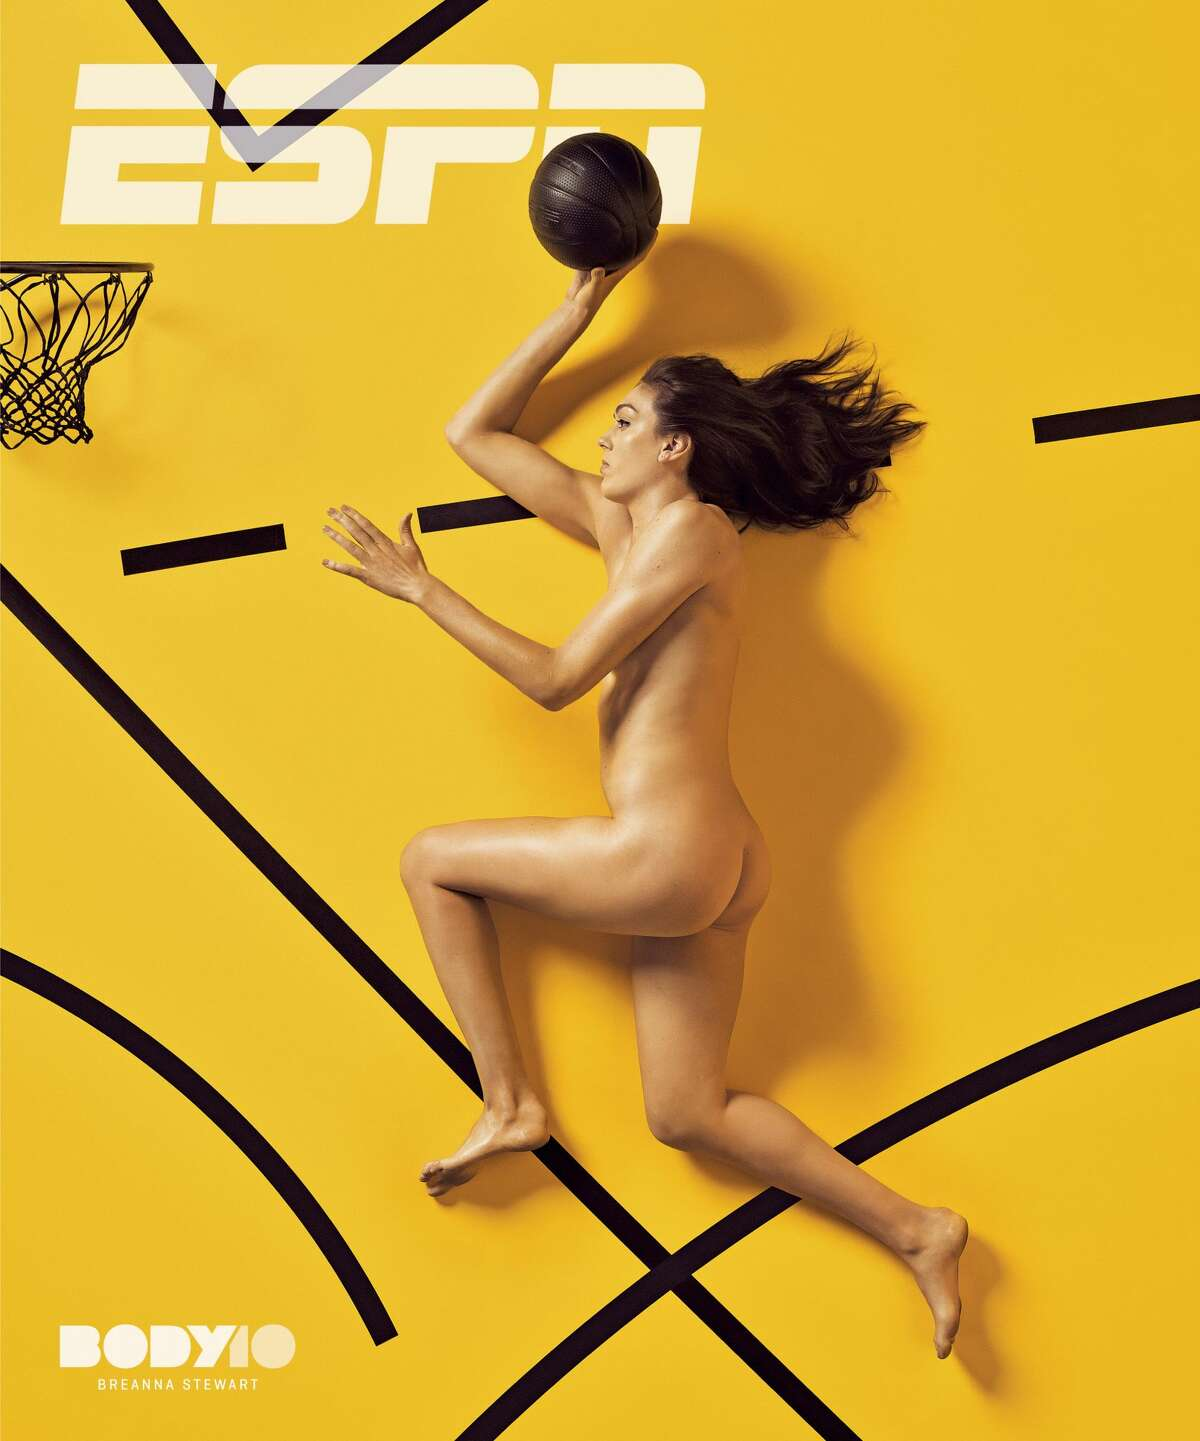 2018 ESPN Body Issue cover of the WNBA's Breanna Stewart. Photo by Marcus Eriksson.